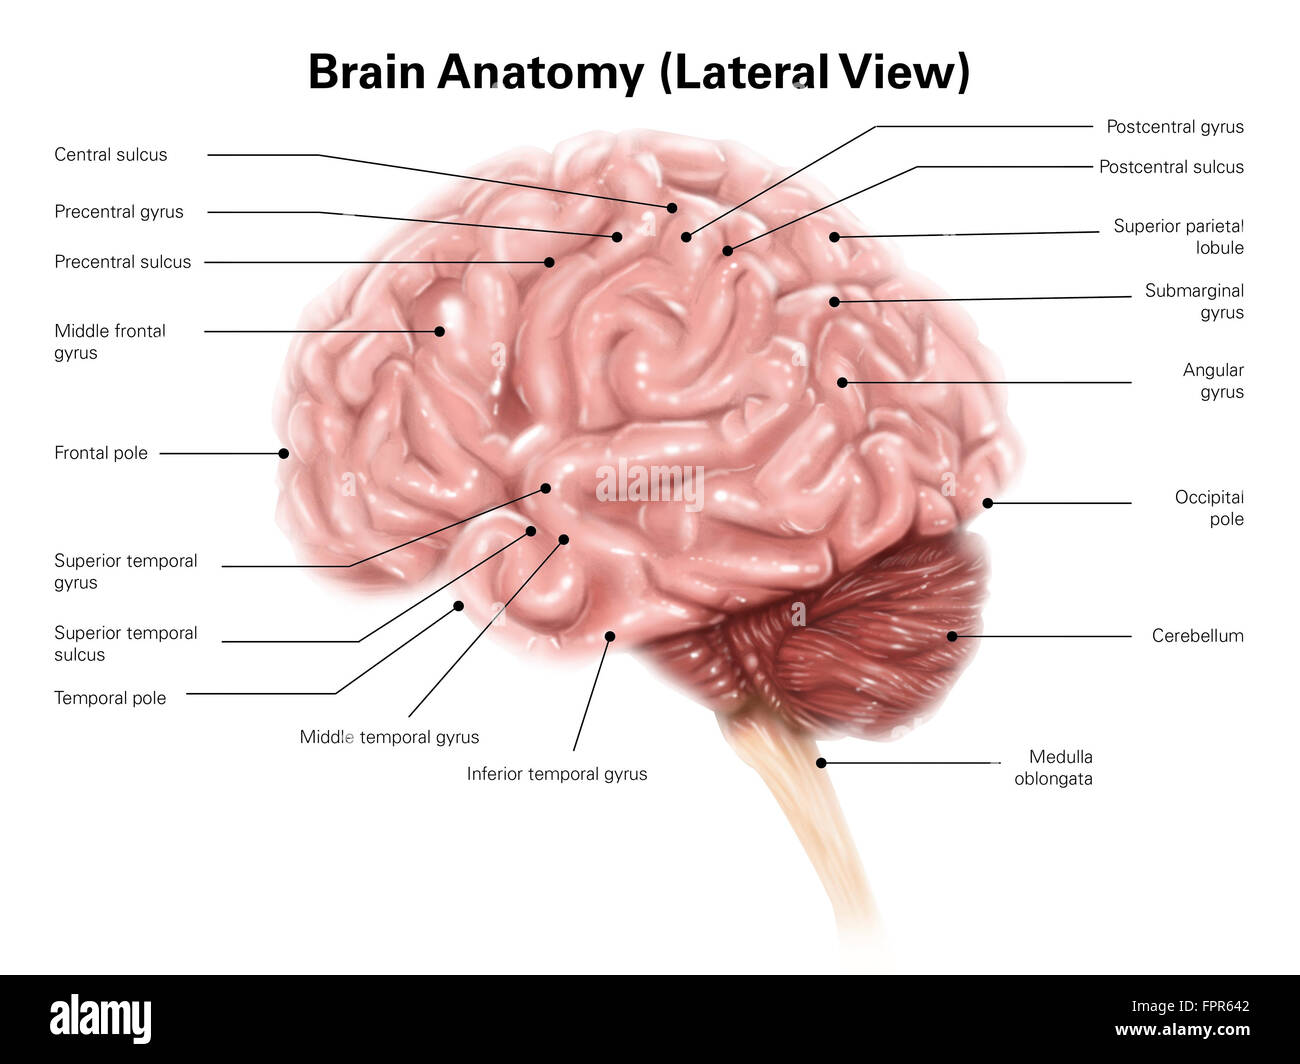 Human brain anatomy, lateral view Stock Photo: 100083986 - Alamy